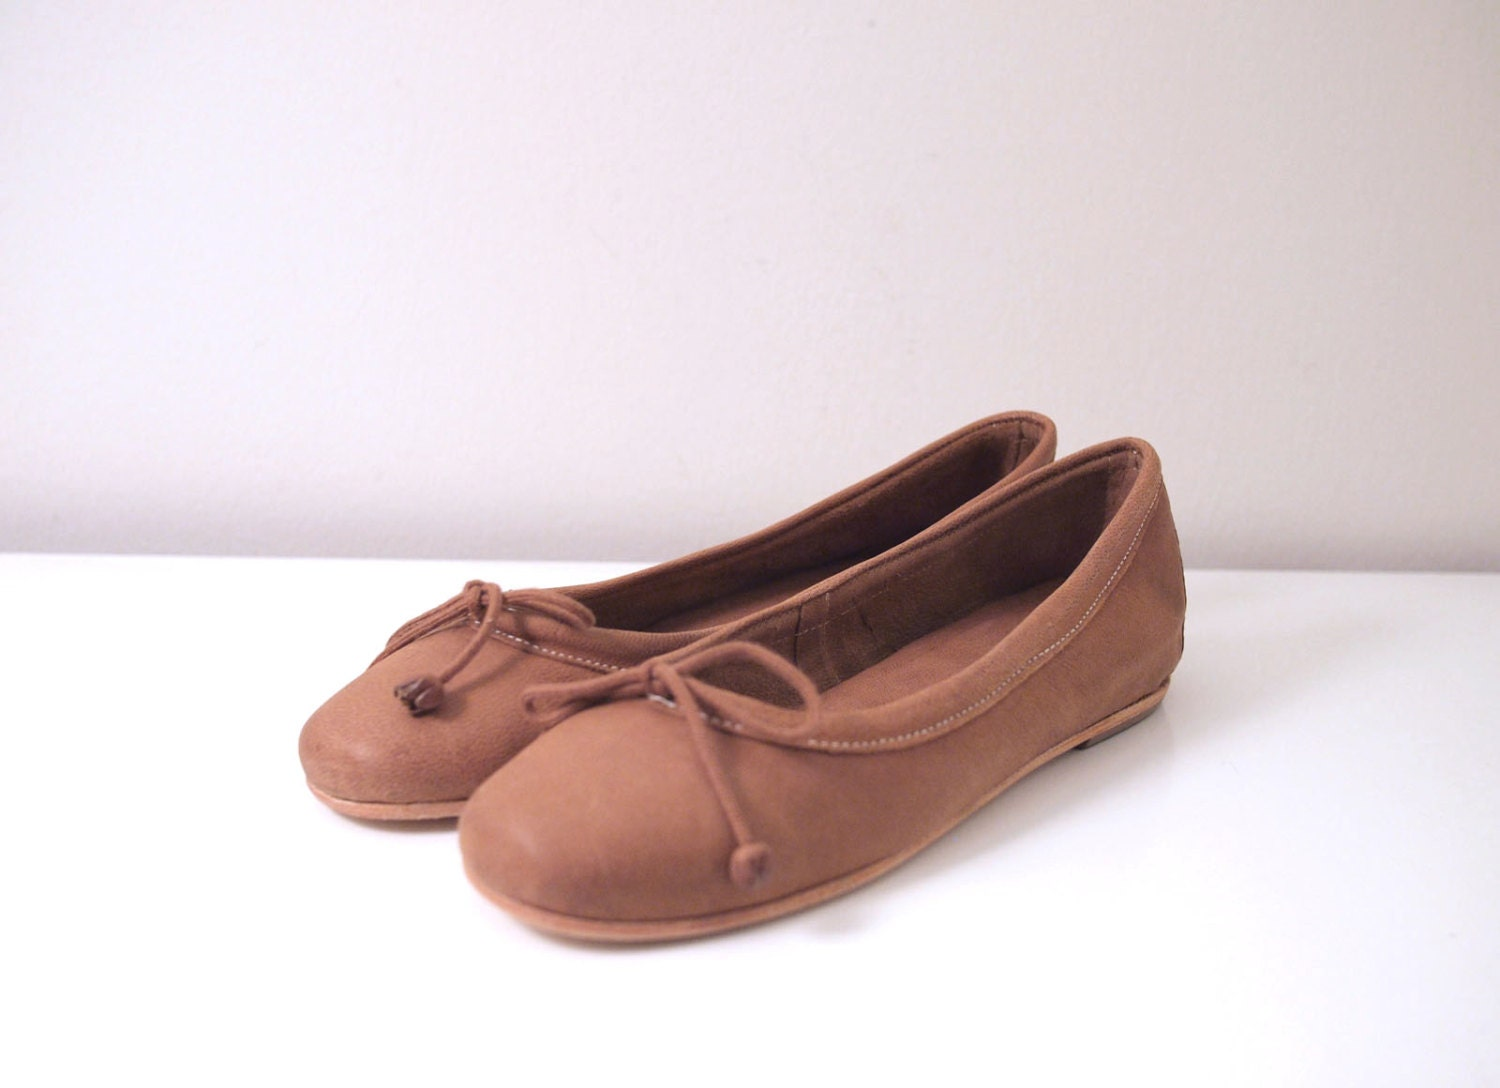 These girls' ballet slippers come in a rich shade of brown that'll help her stand out in a room full of classic black and pink ballet wear. The leather ballet shoes have a sleek look that'll help your girl feel like a professional ballerina, and a cotton lining that'll keep .